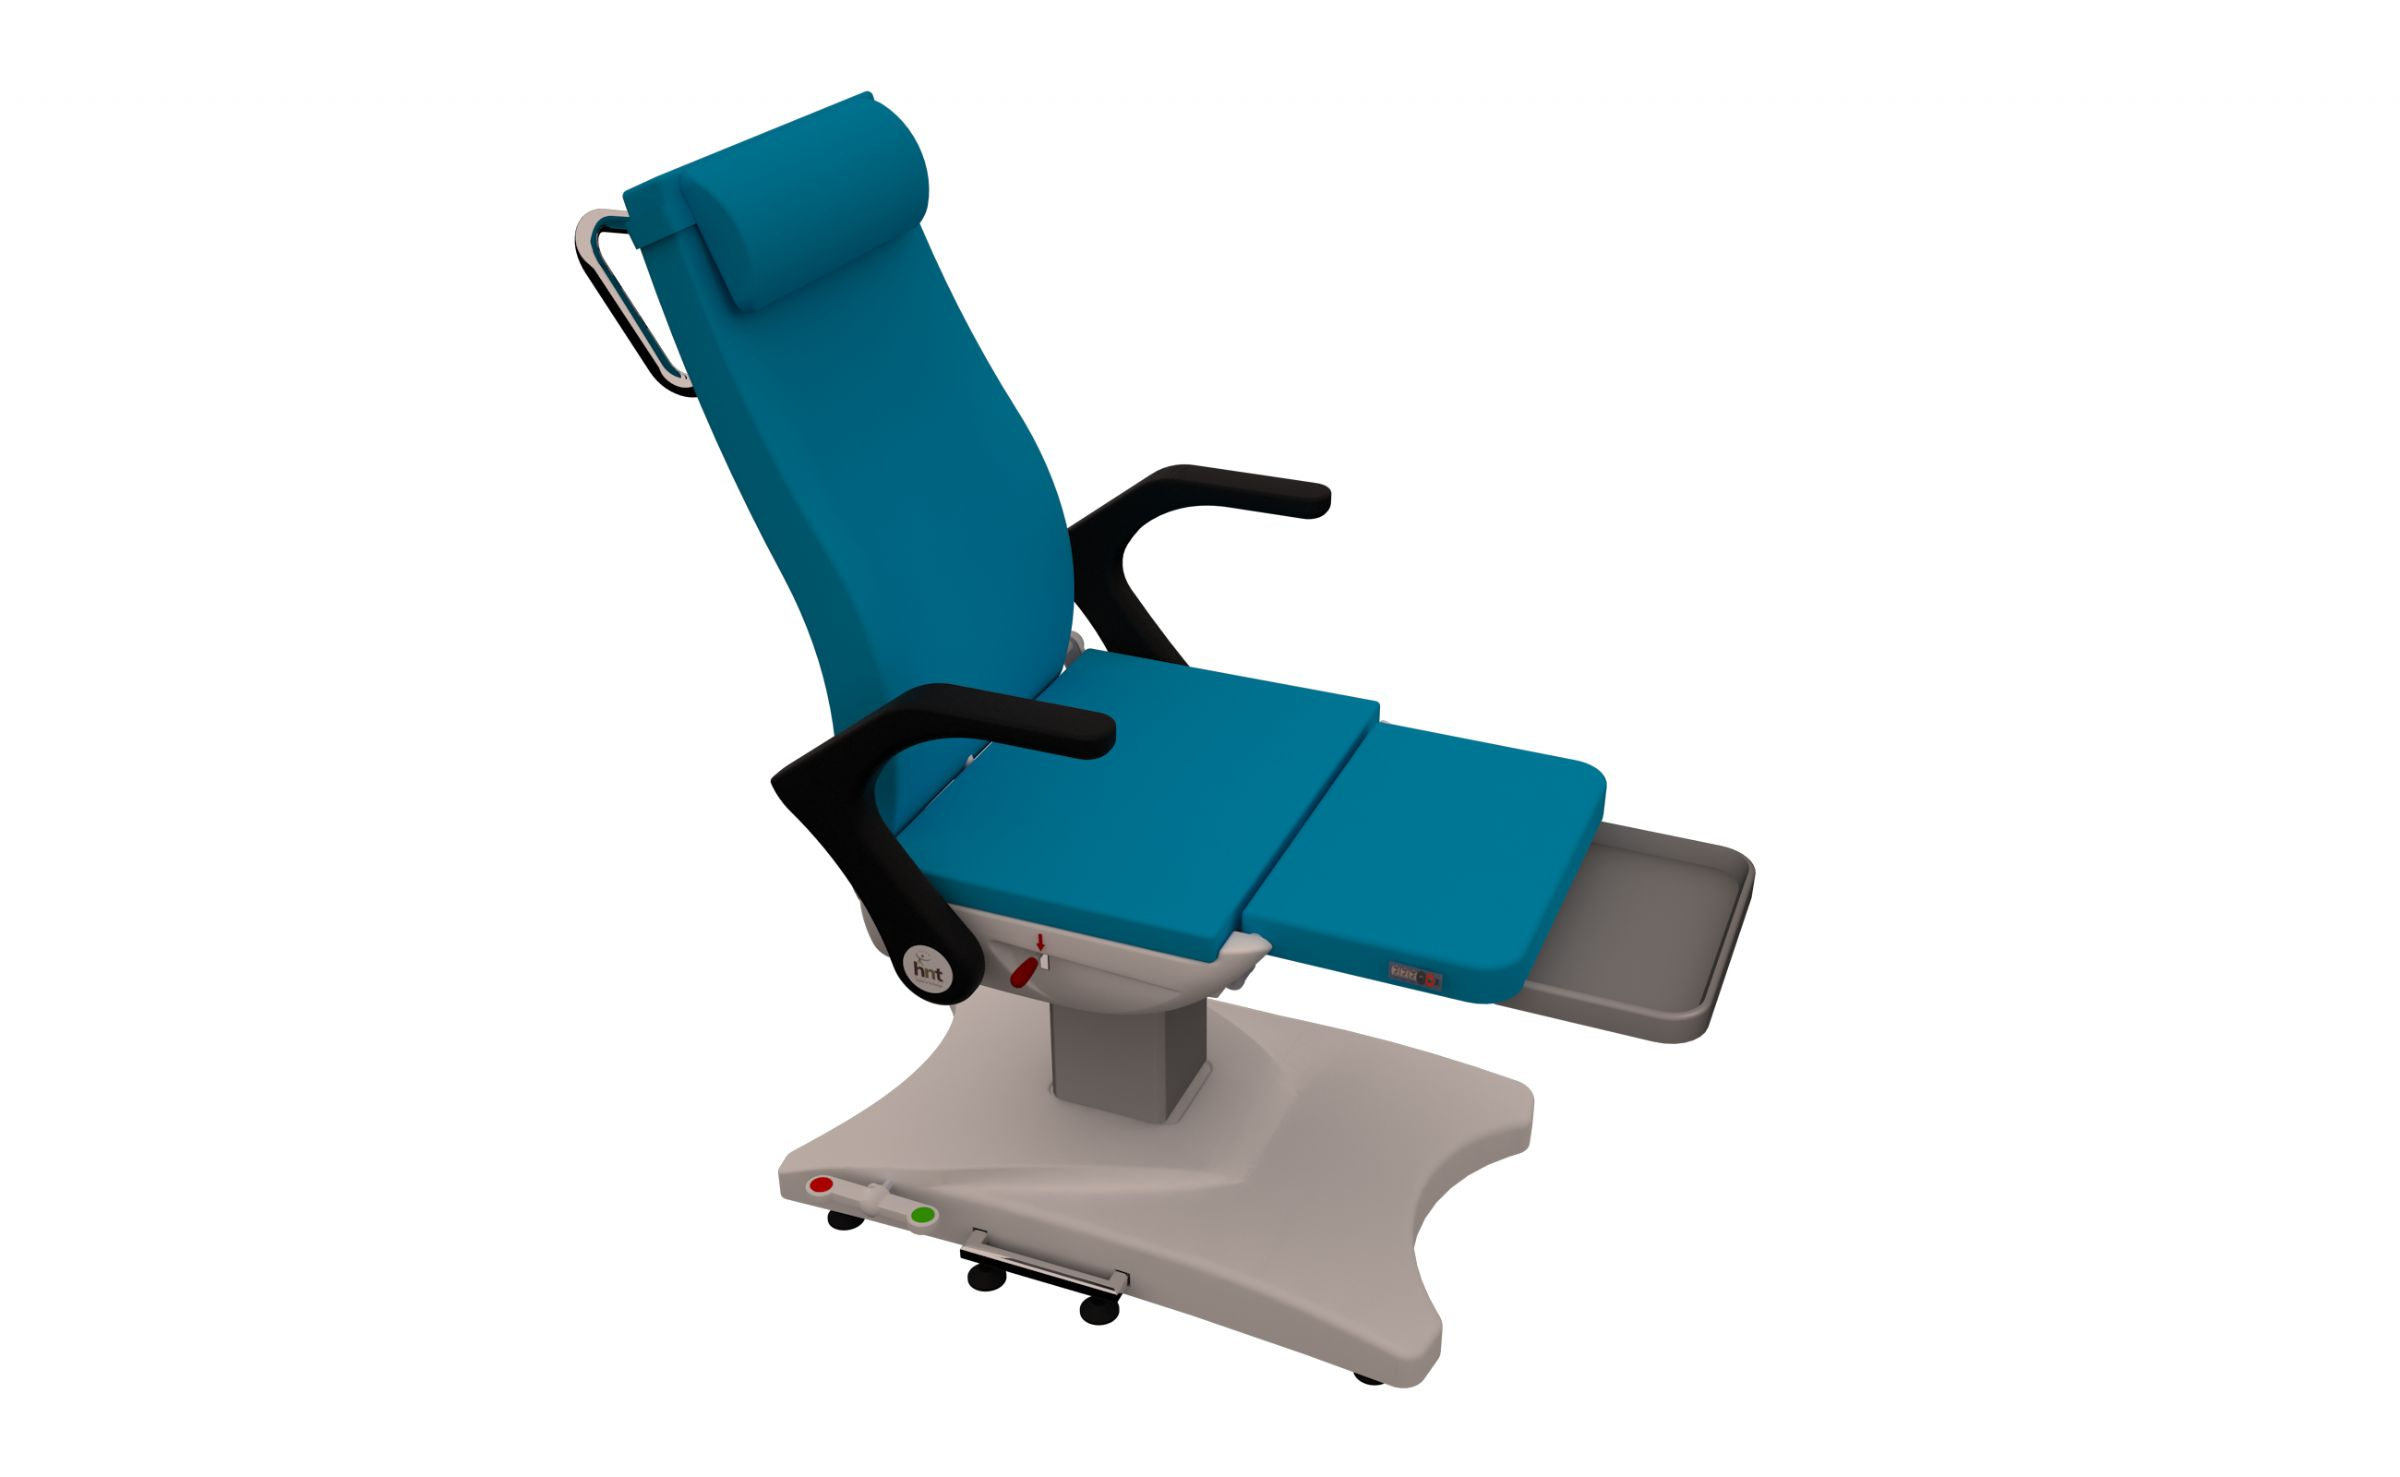 Podiatry Examination Chair - FREE Shipping